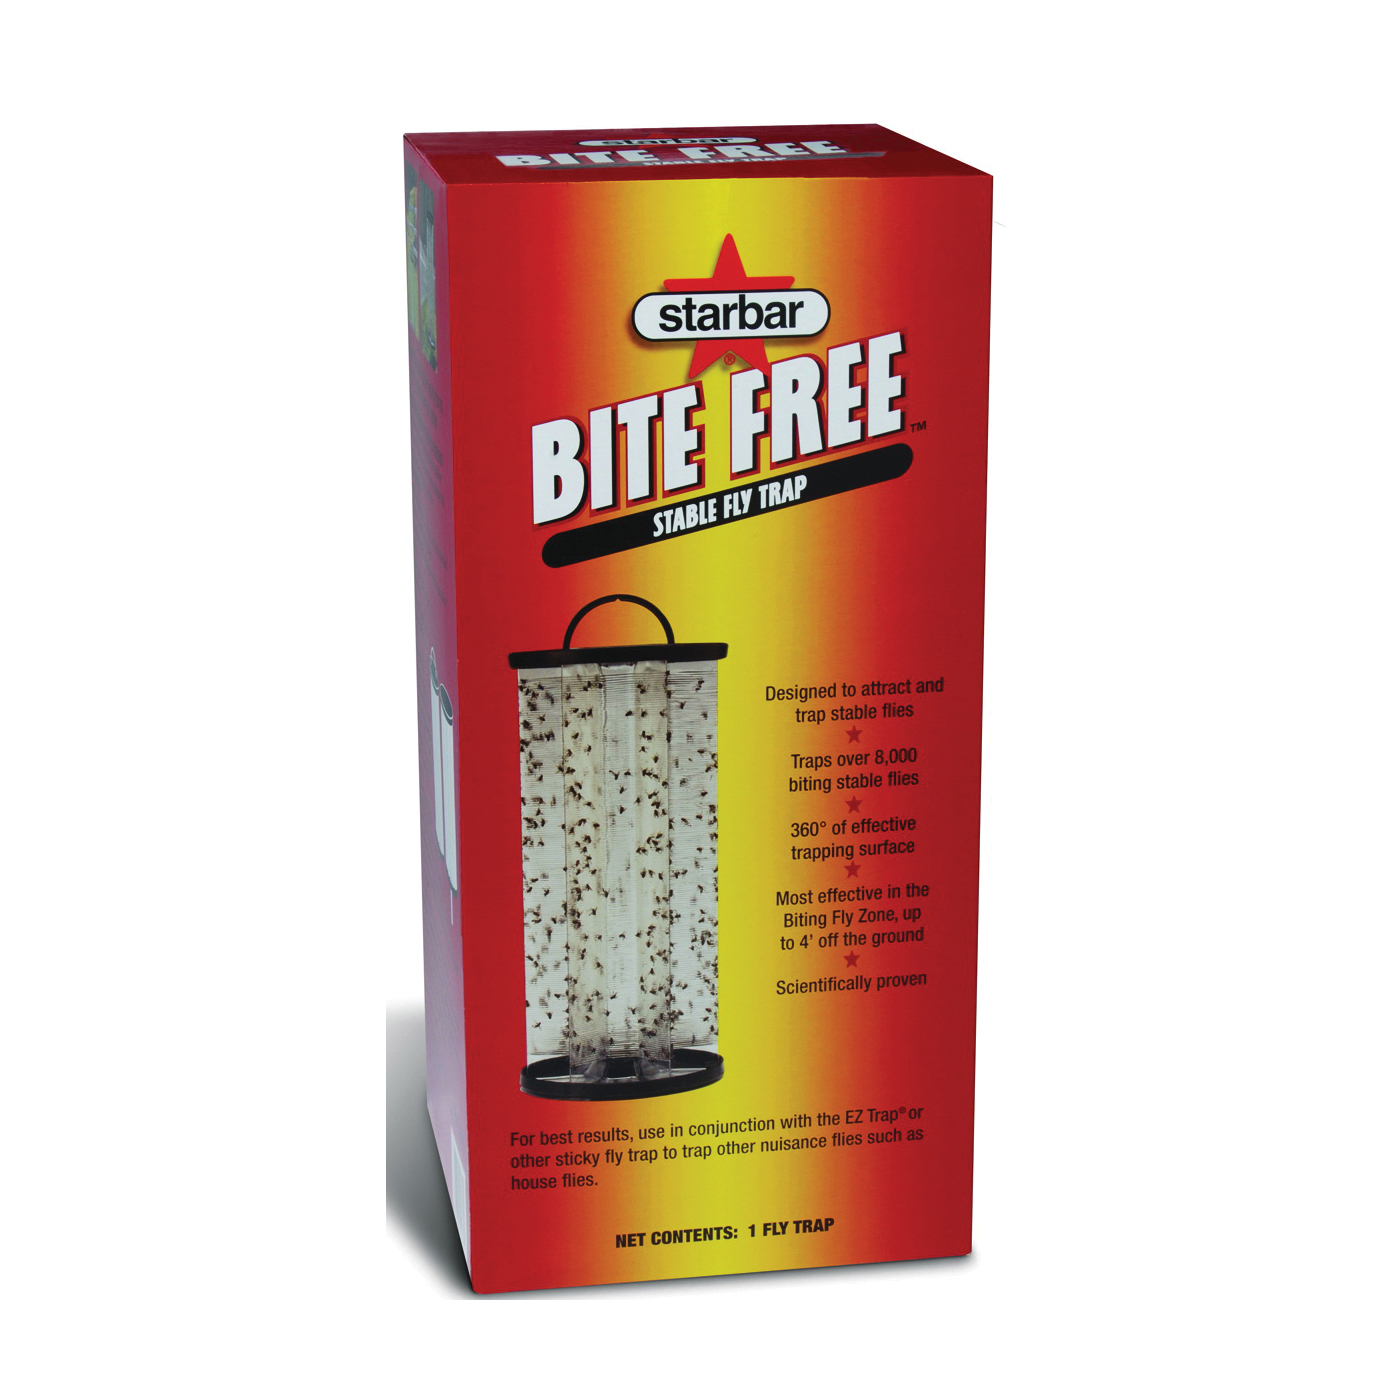 Picture of Starbar Bite Free 3005363 Fly Trap, 6 Package, Case